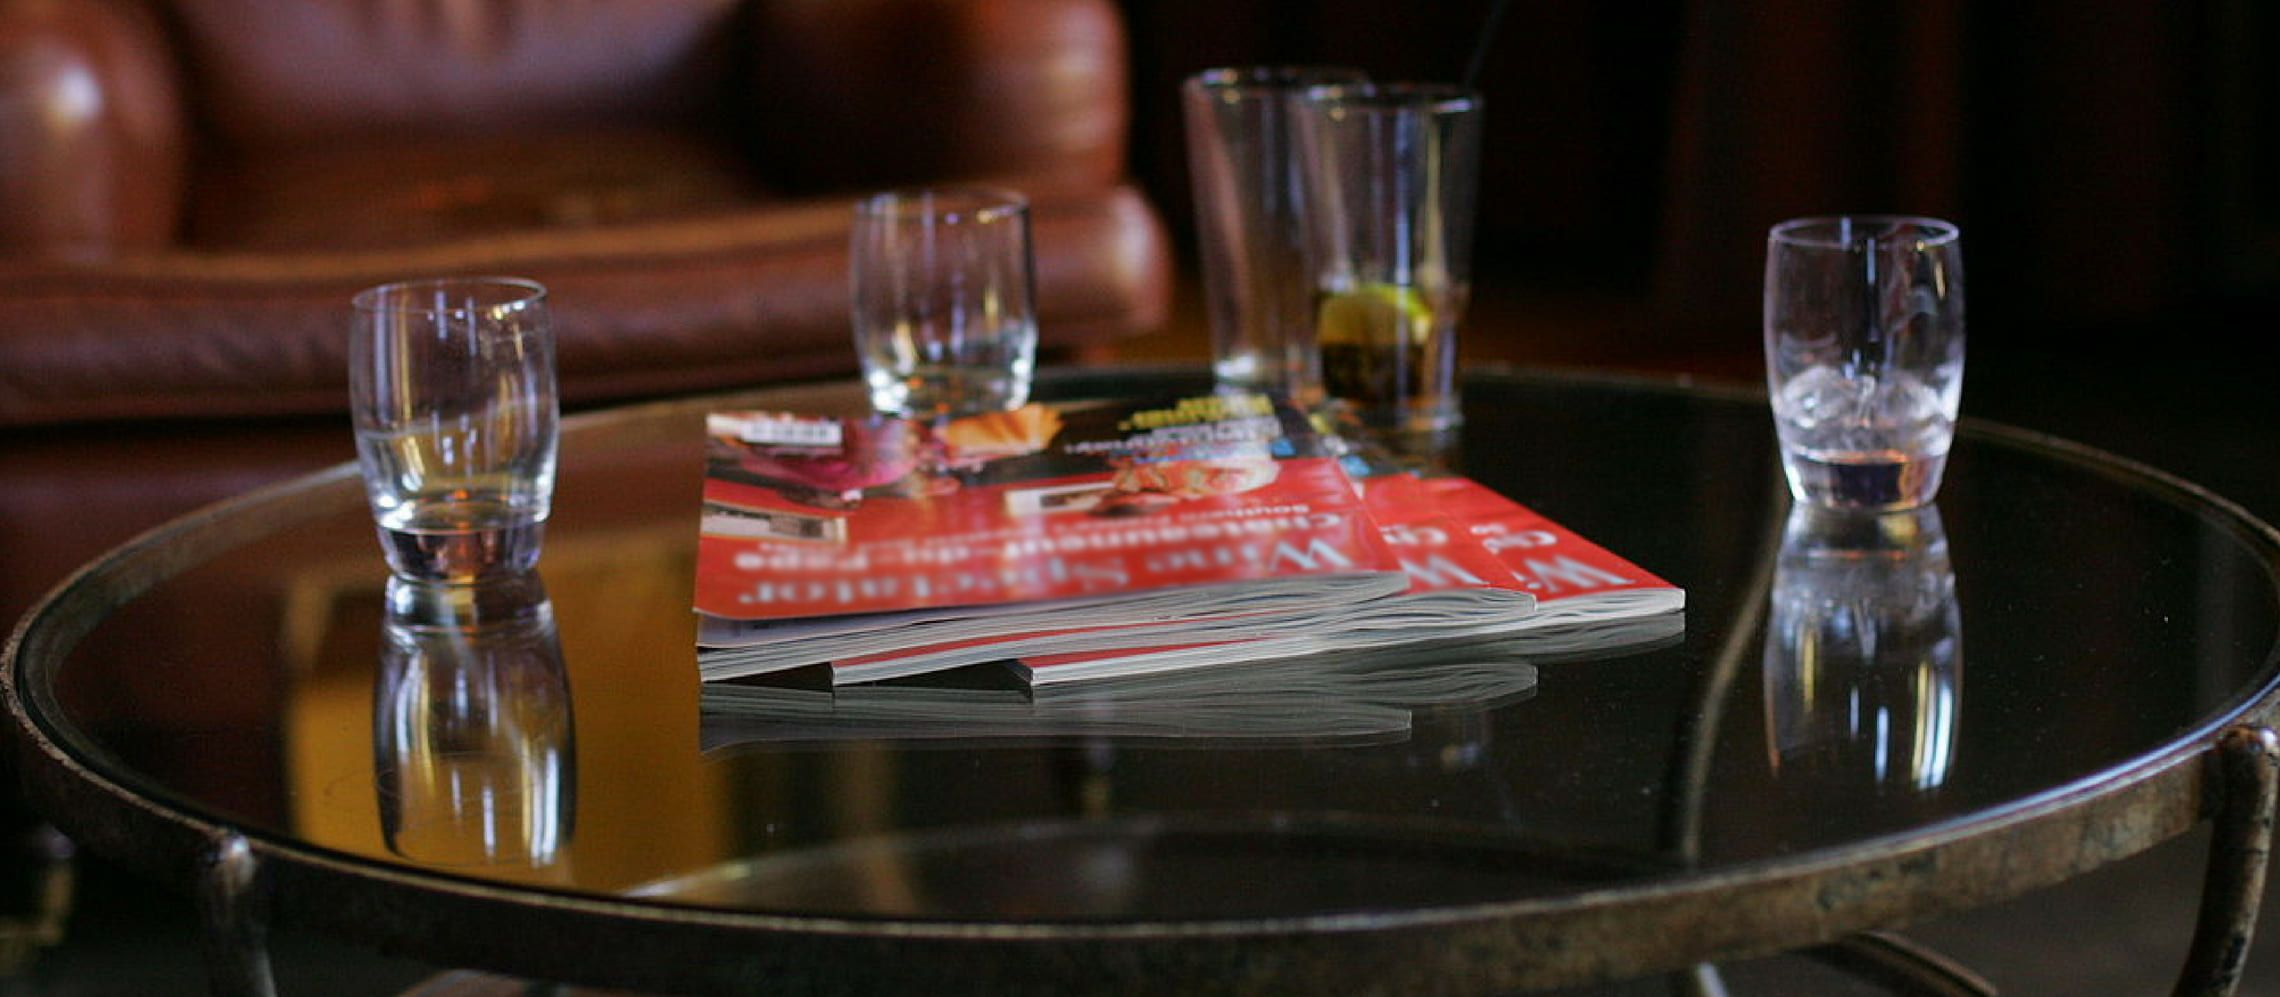 Photo for: 6 Wine Magazines in Europe You Should Subscribe to